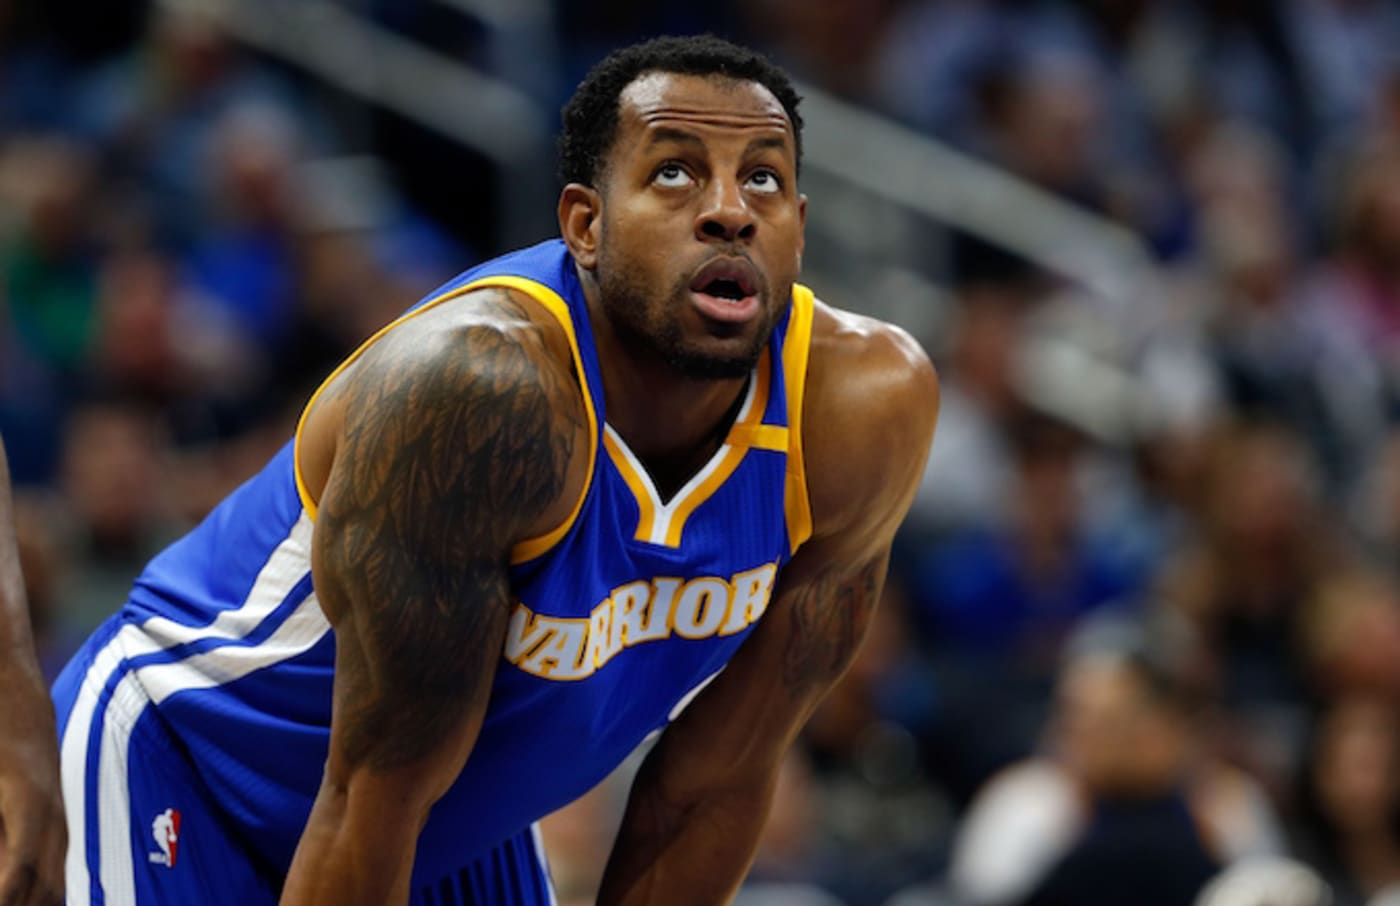 Andre Iguodala puts his hands on his knees during game.